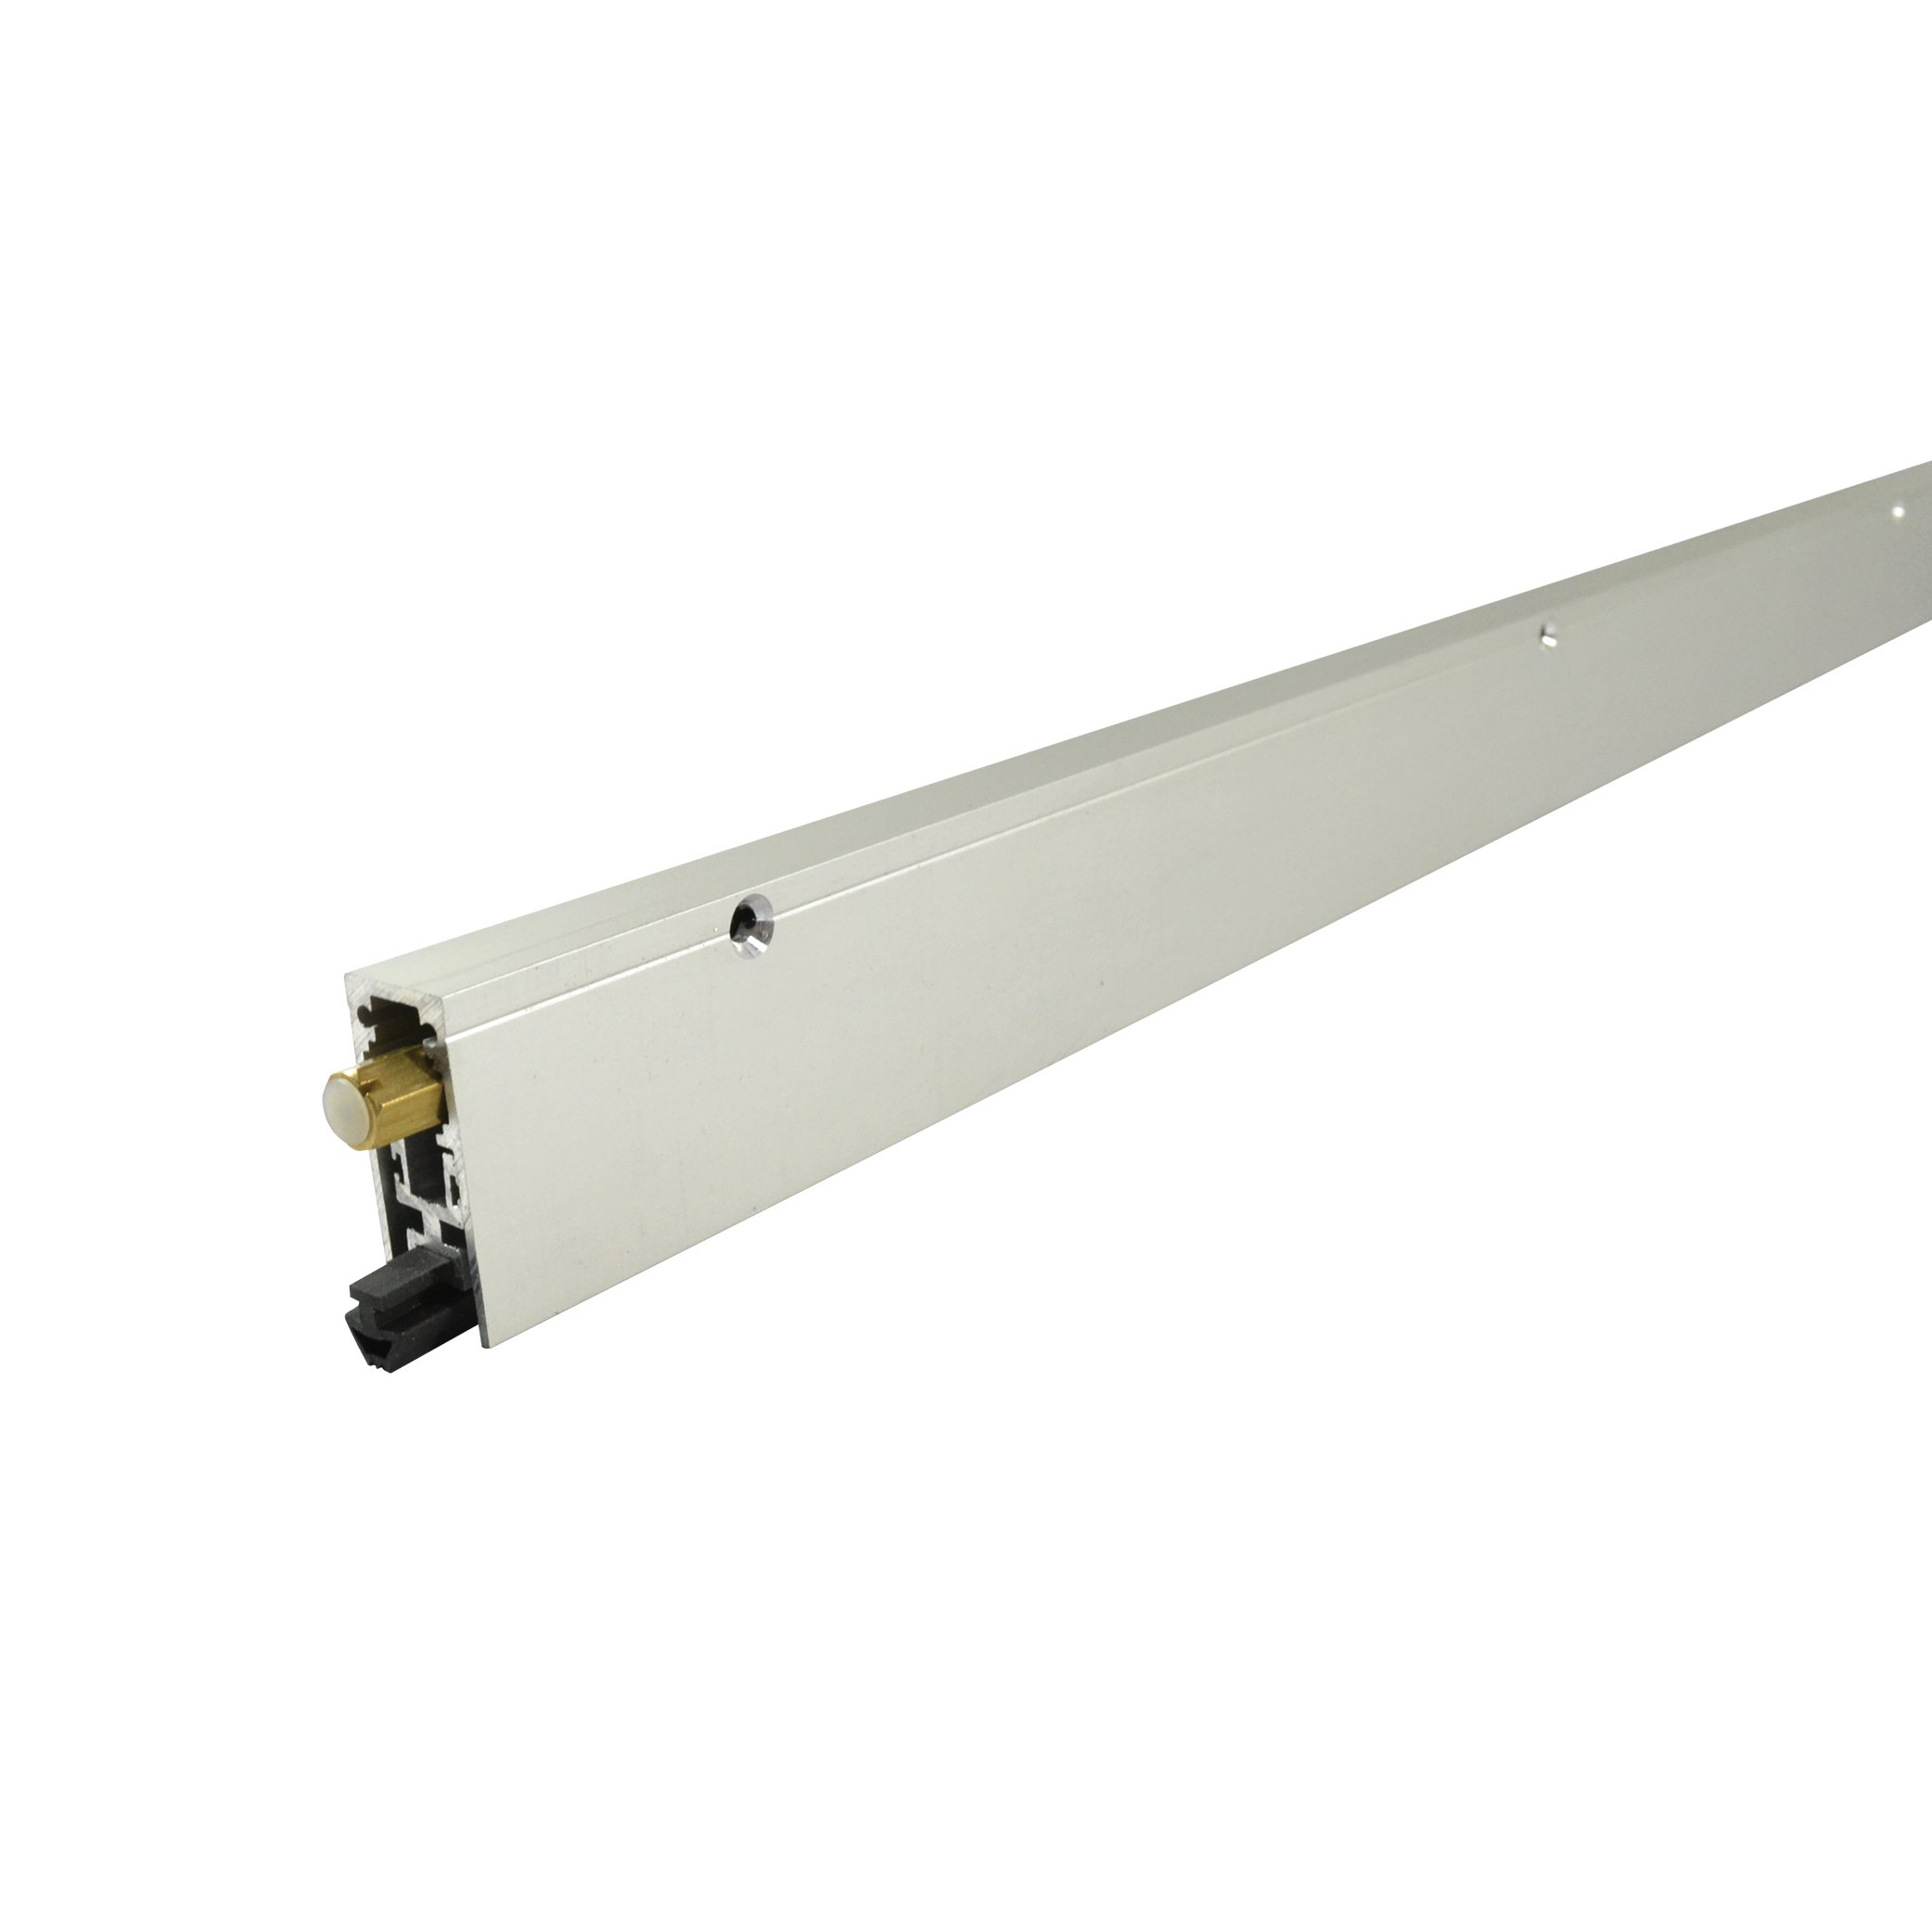 Fire Rated/Regular Duty/Clear Anodized Aluminum/Surface Automatic Door Bottom with Solid Rubber Extrusion (7153CA), SMS # 6 x 1 1/4'' Supplied, (11/16'' W x 1-25/32'' H x 36''L) by Legacy Manufacturing, LLC.